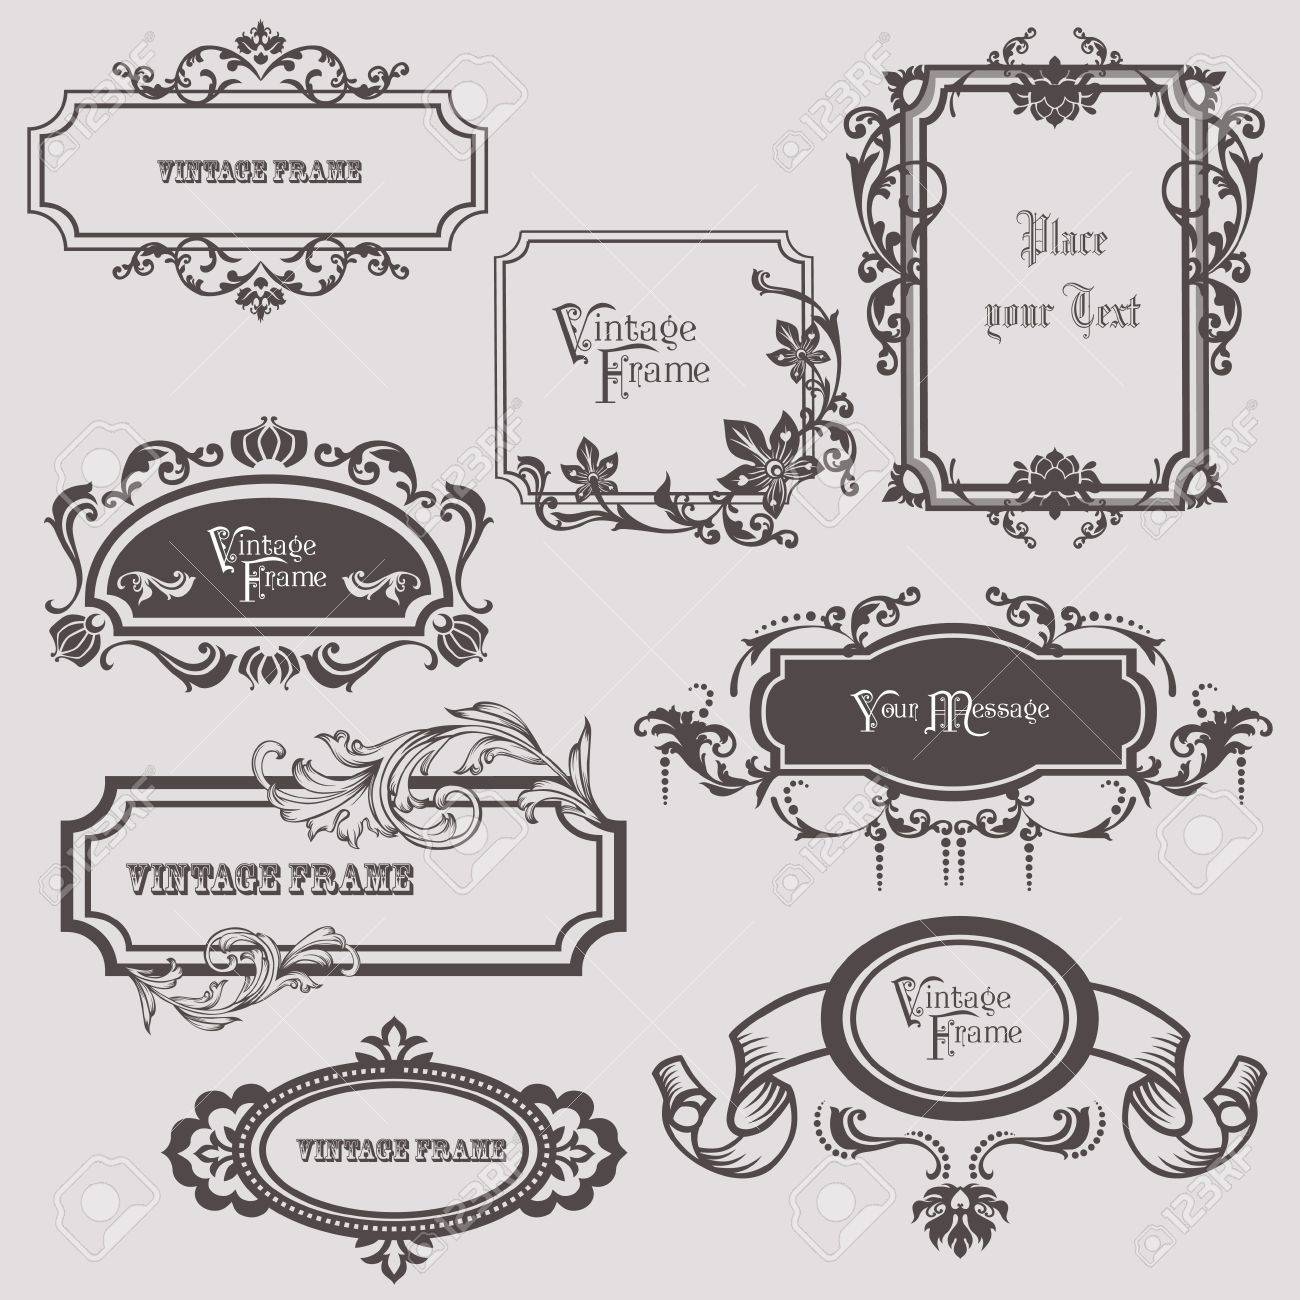 Vintage frames and design elements - with place for your text Stock Vector - 11975052